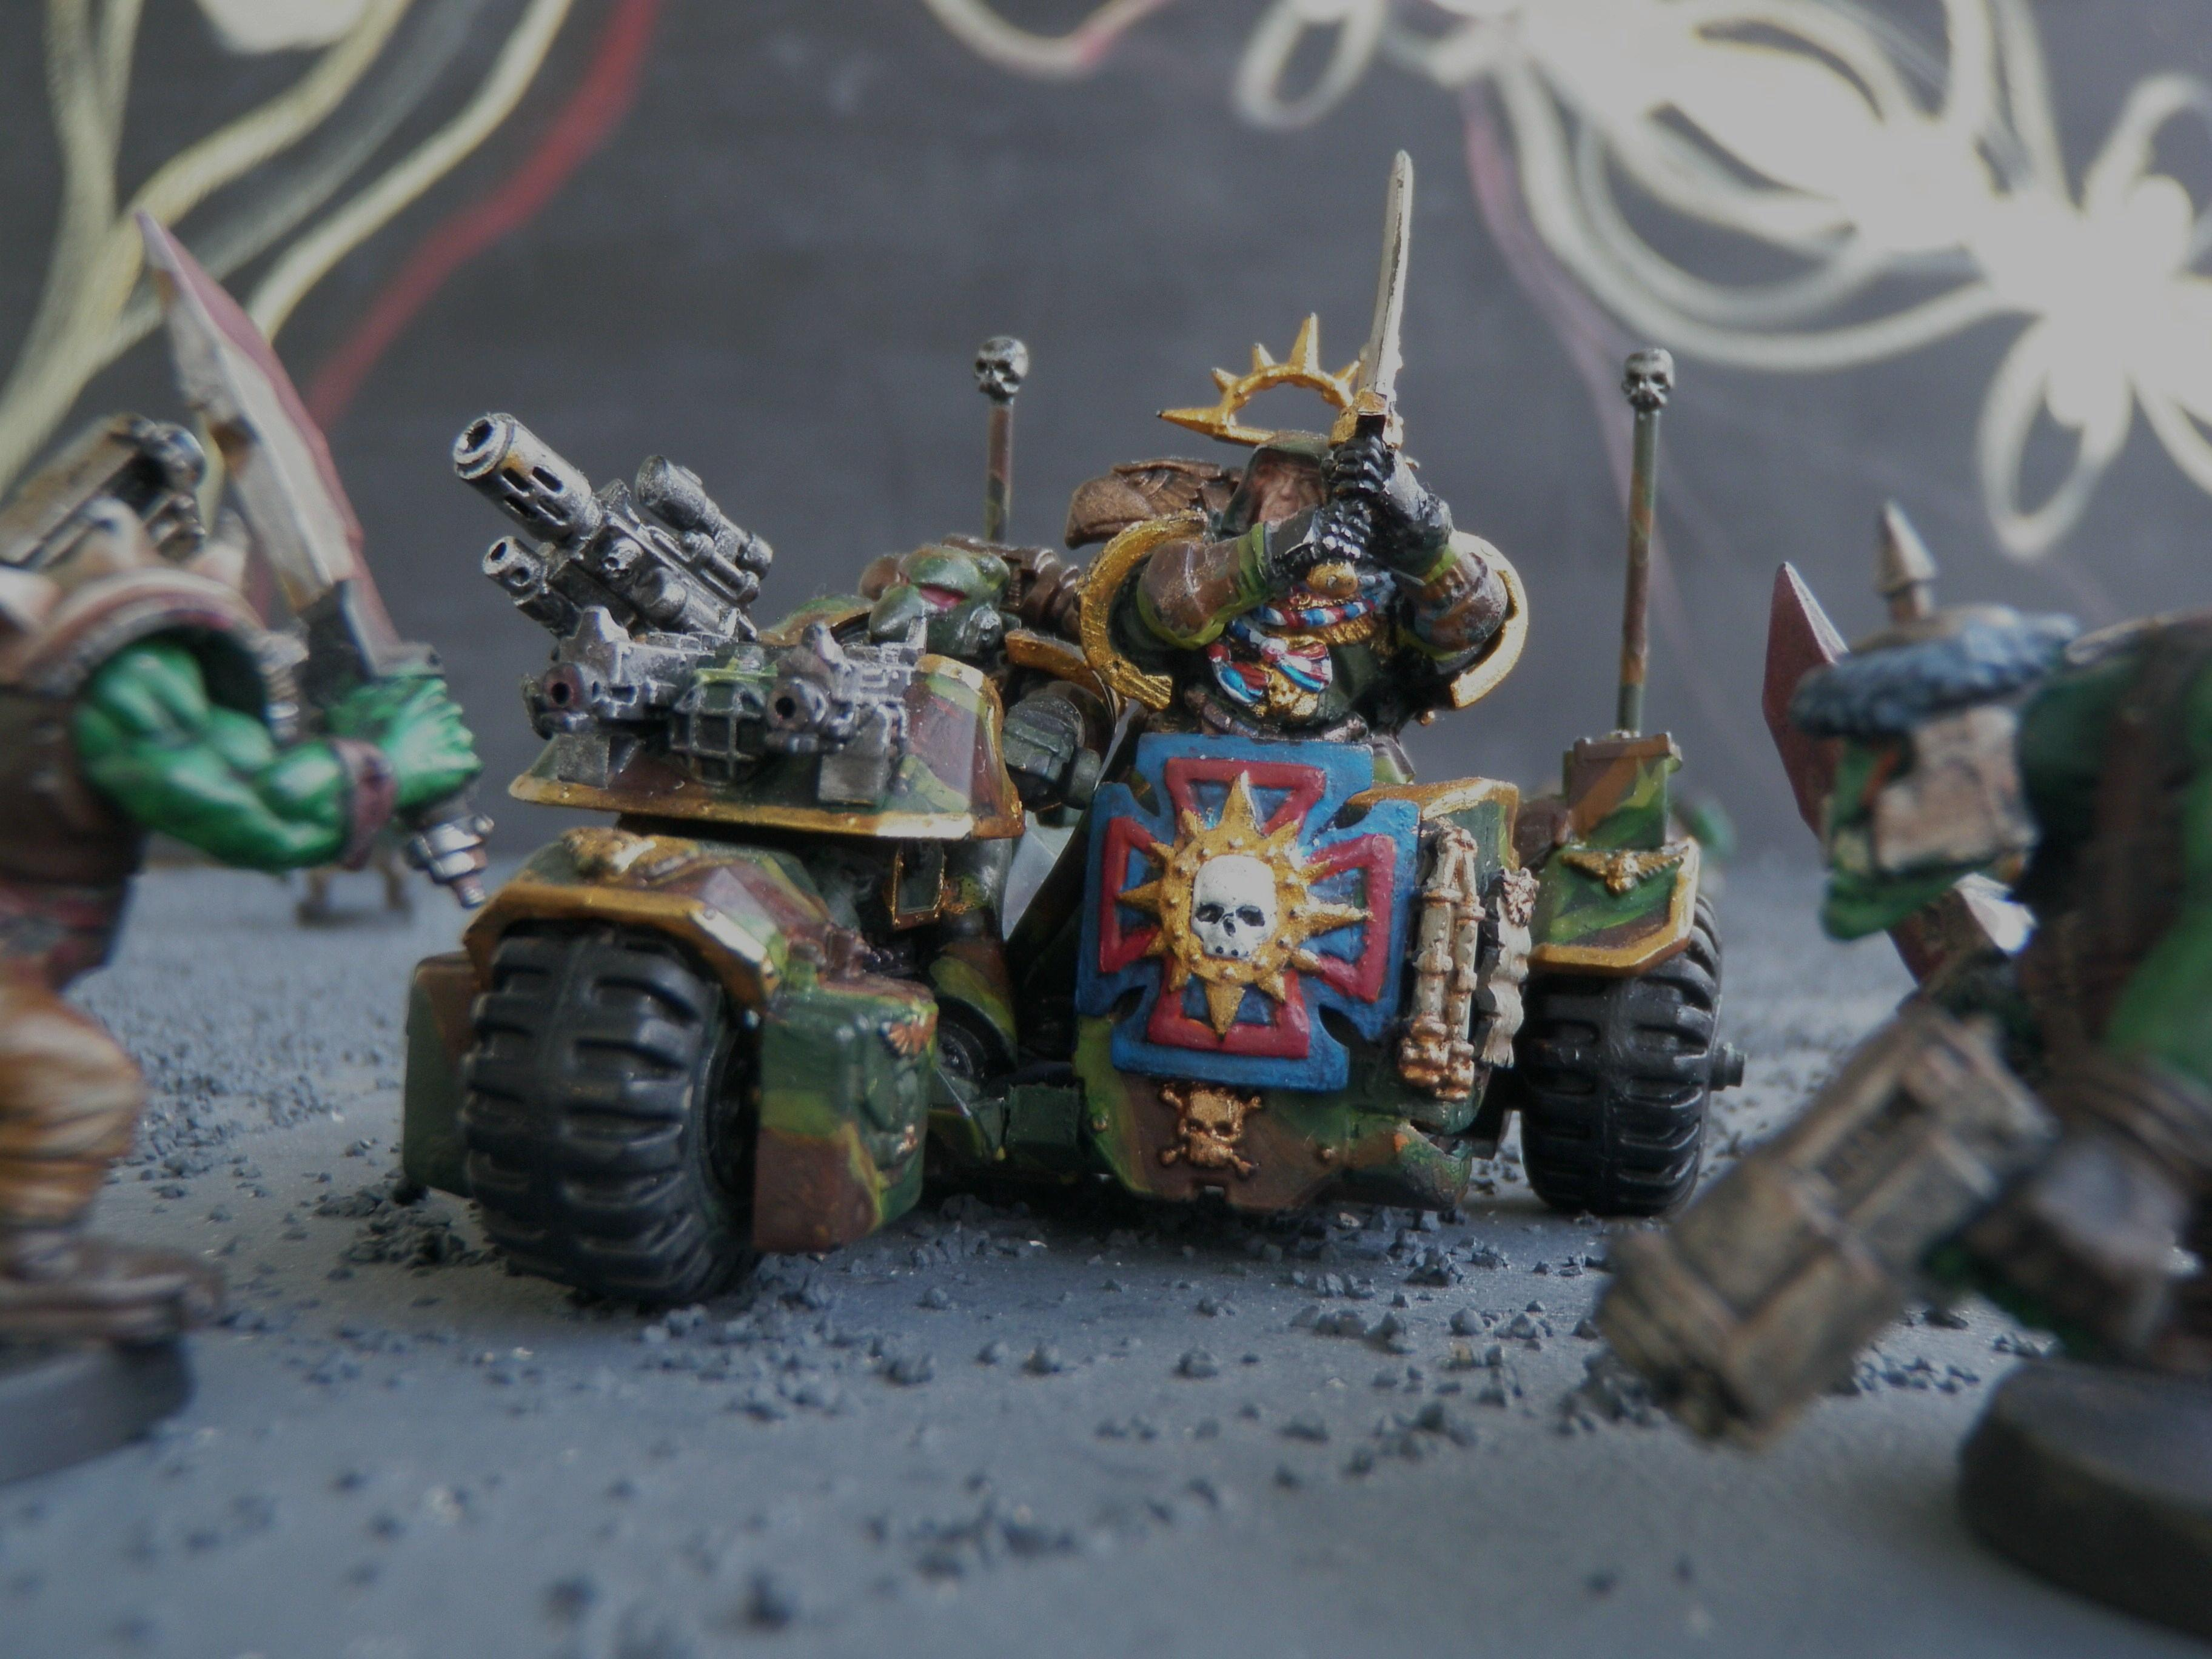 Bike, Camouflage, Captain, Side-car, Space Marines